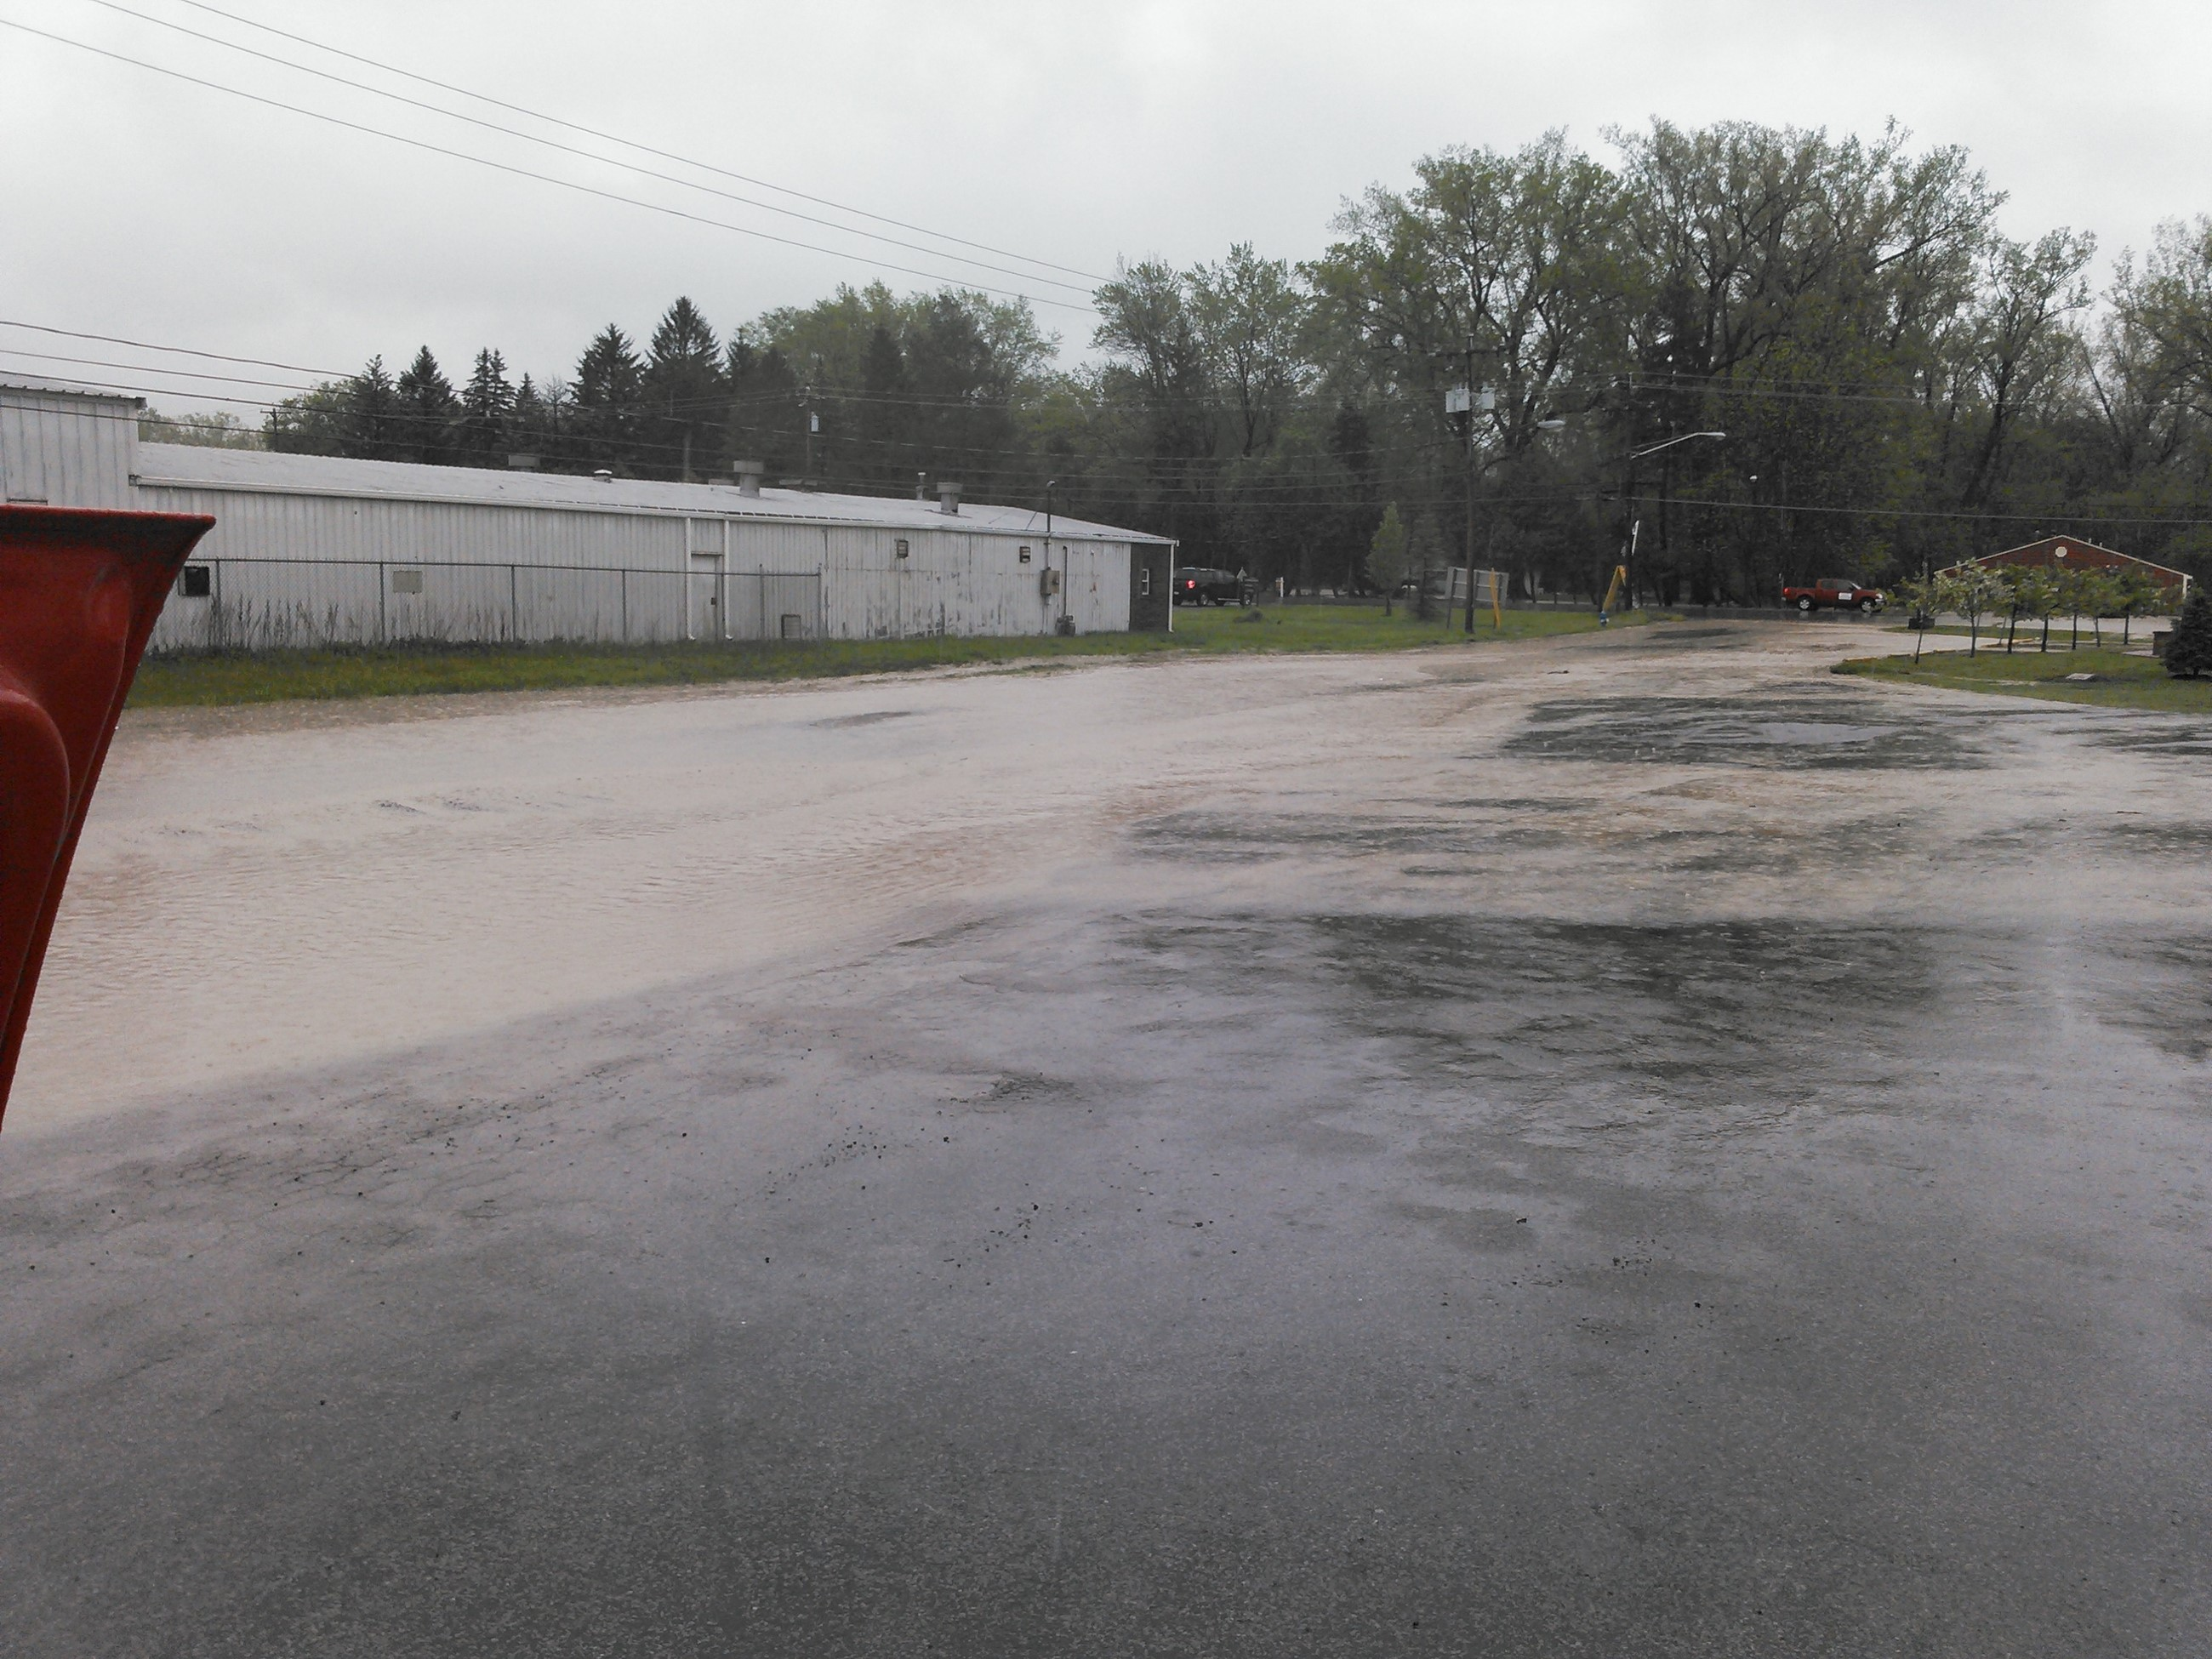 Road Flooding by Honeoye Sewer Plant